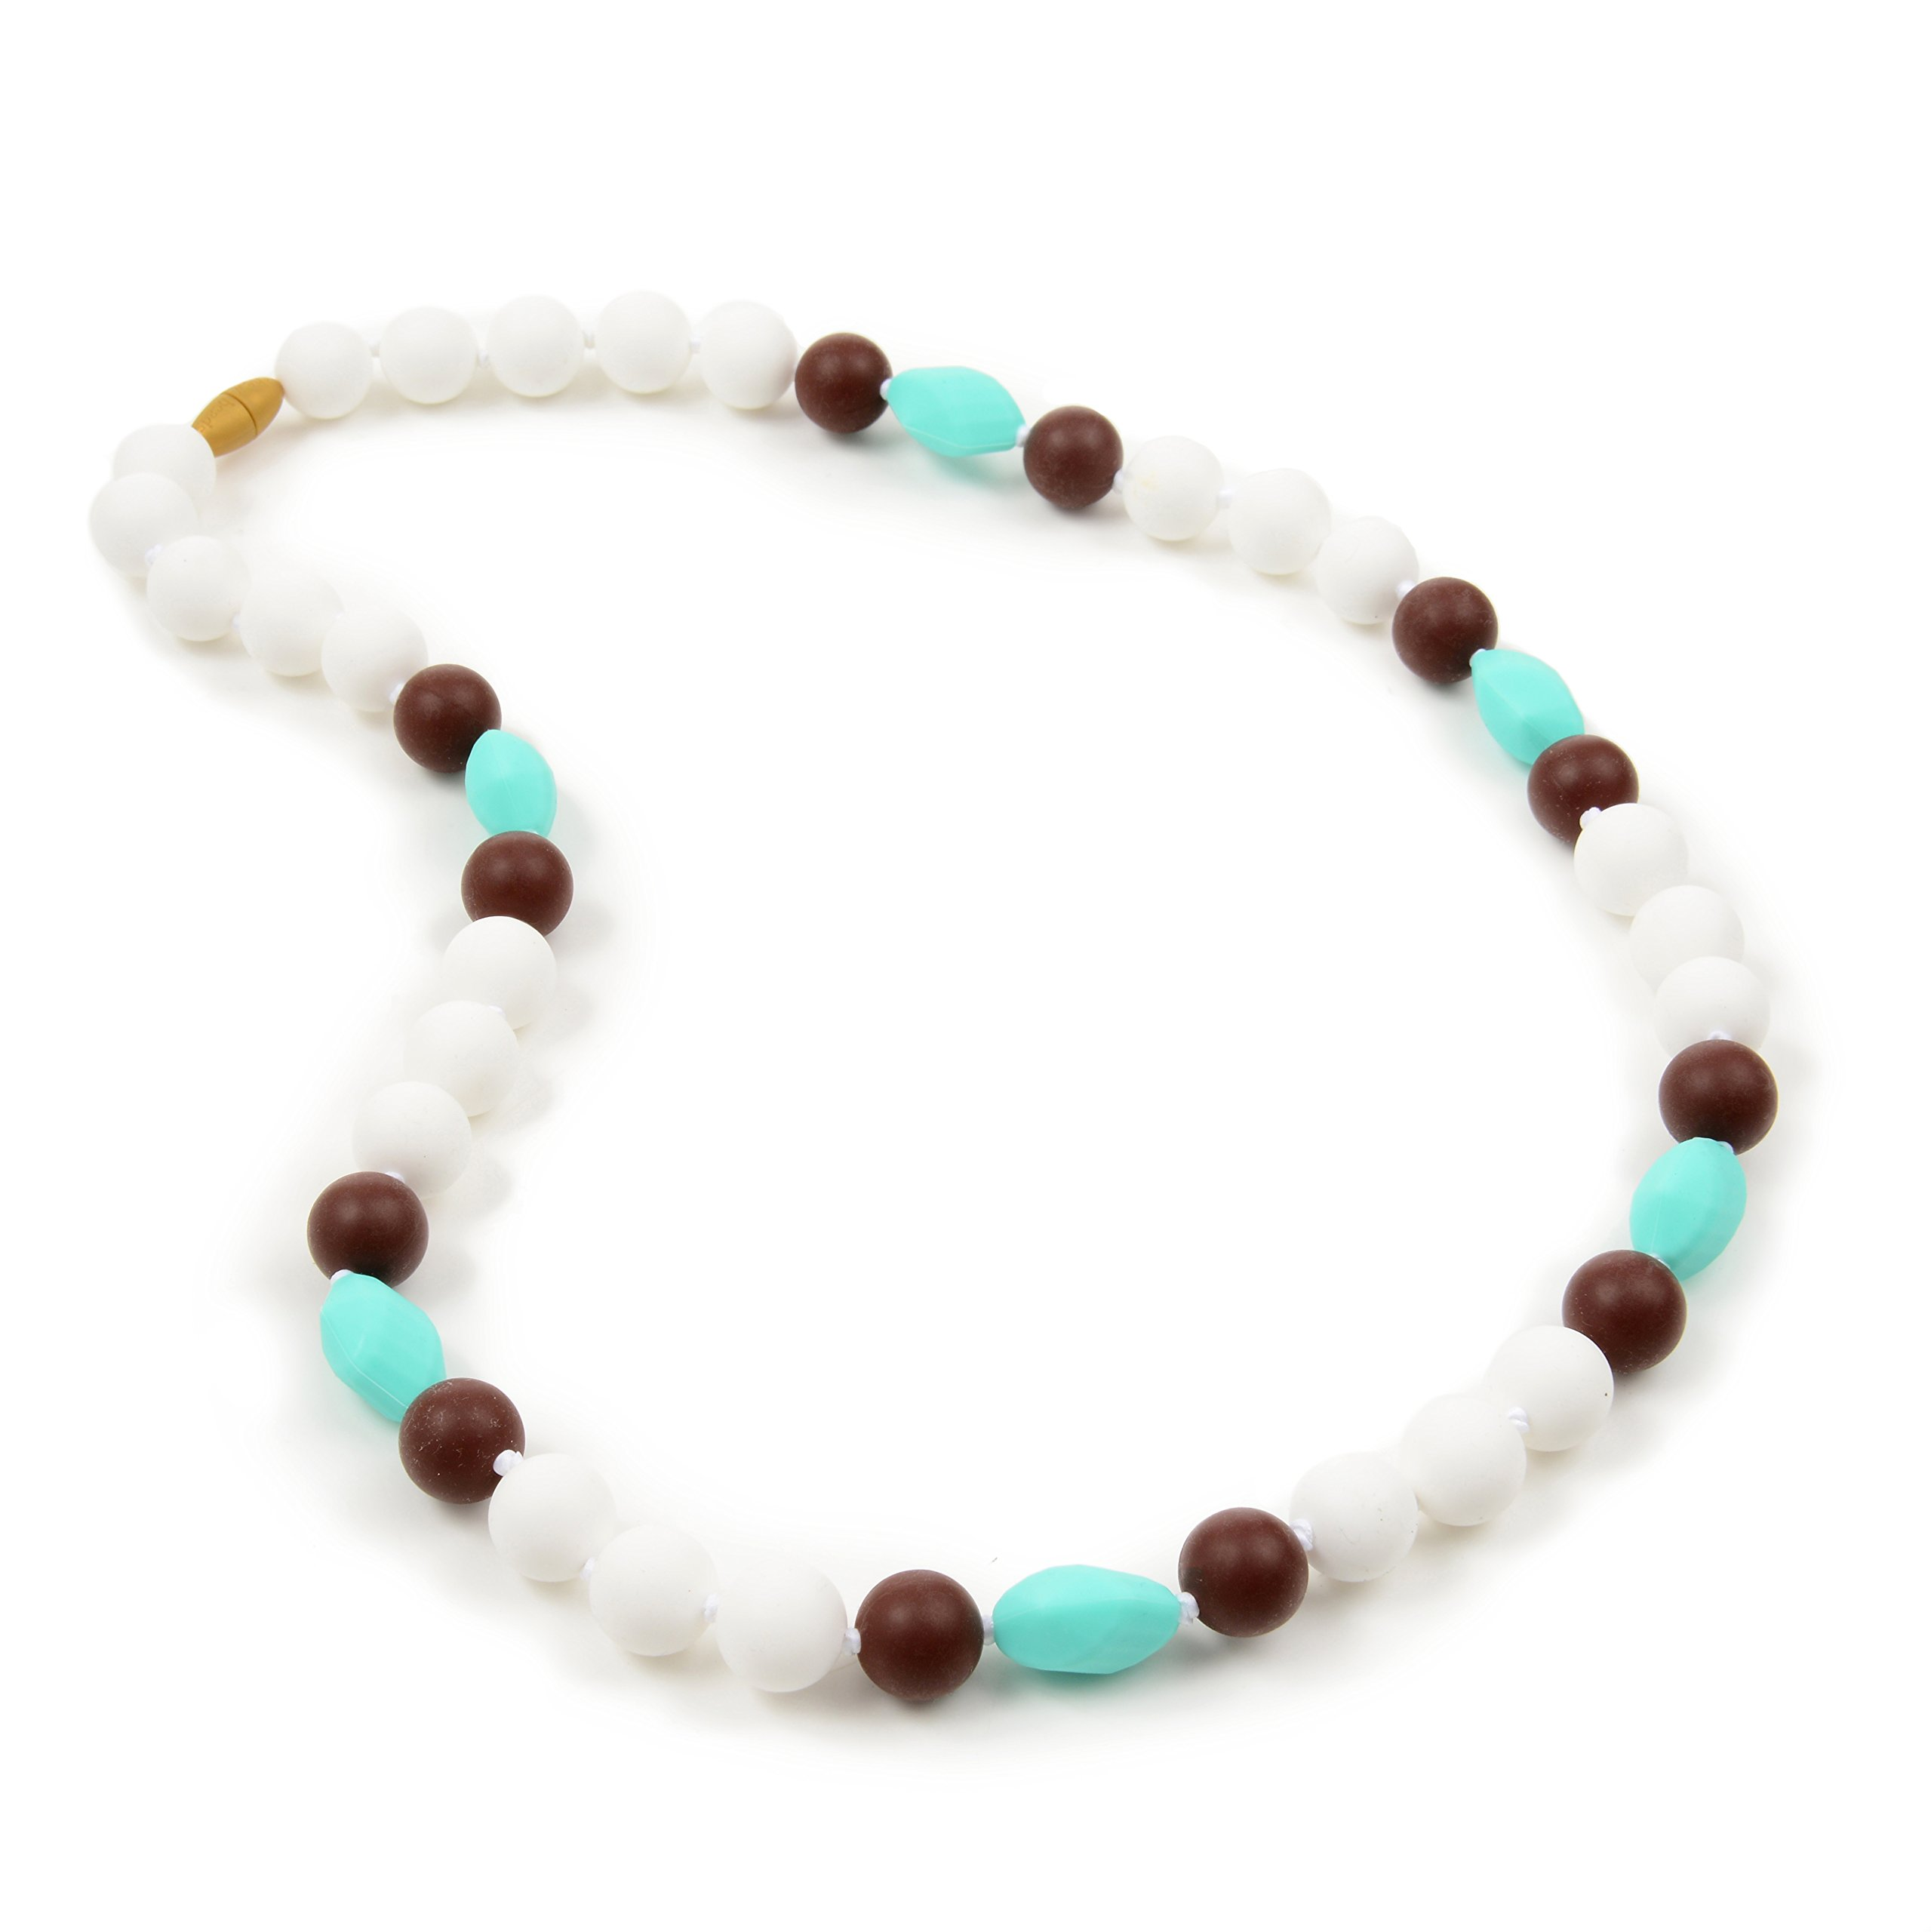 Chewbeads Montauk Teething Necklace - Simply White by Chewbeads